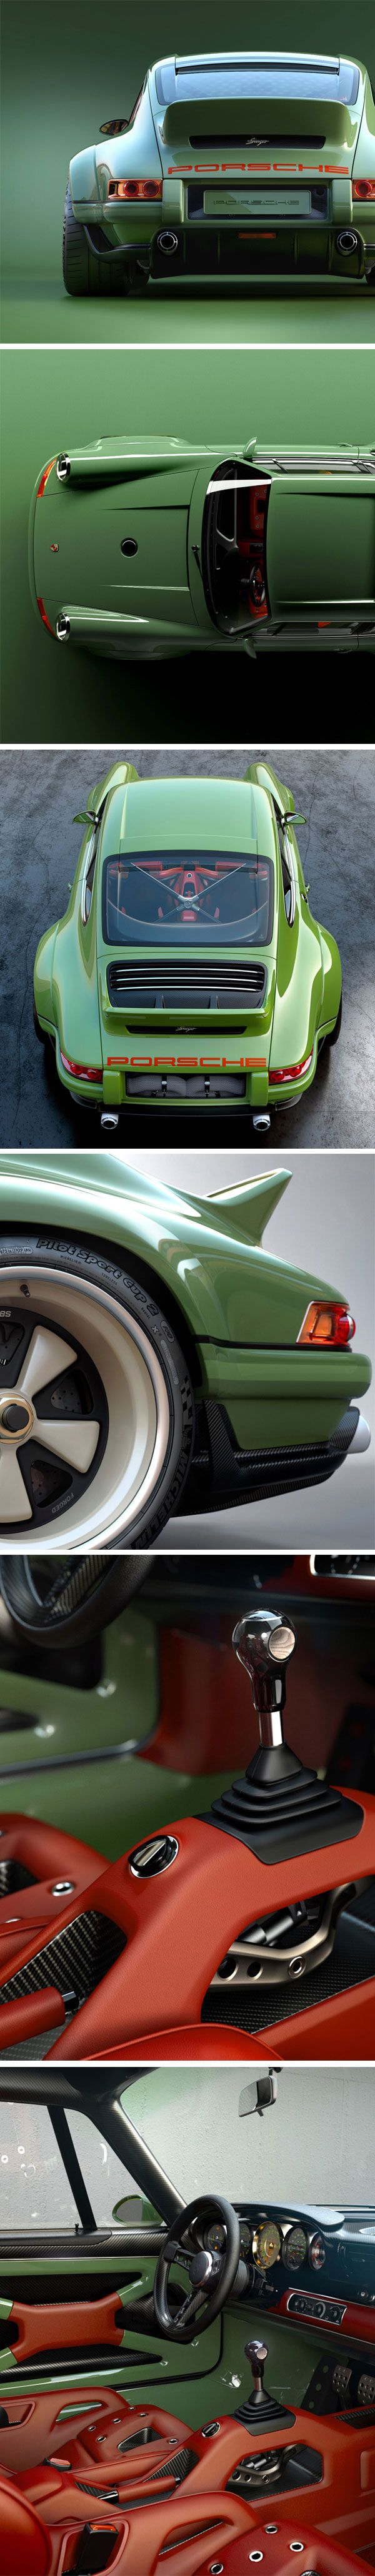 A Custom 1990 Porsche 964, The First In A Limited Edition Series #porsche #musclecars #sportcars #cars #racing